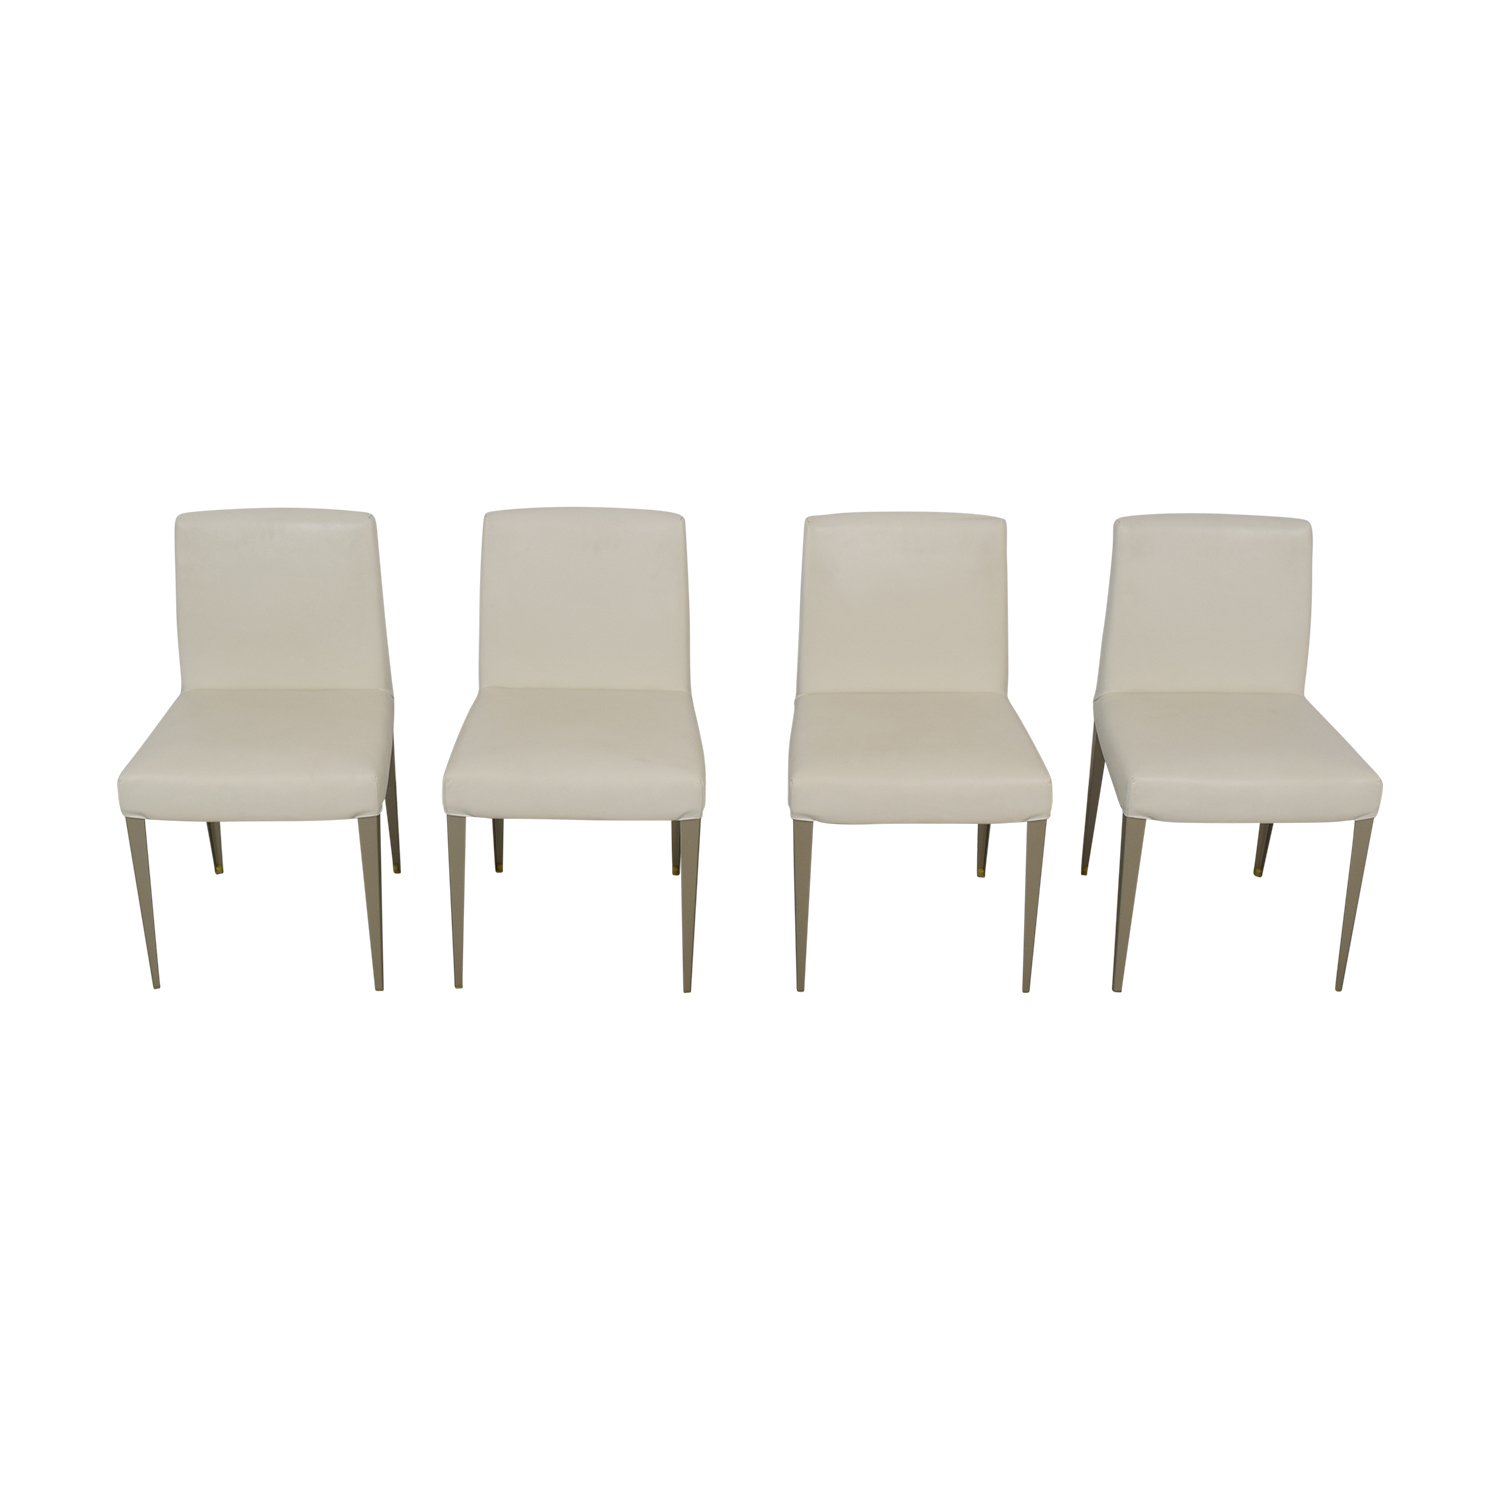 white leather chairs dining nichols and stone 52 off b italia nyc